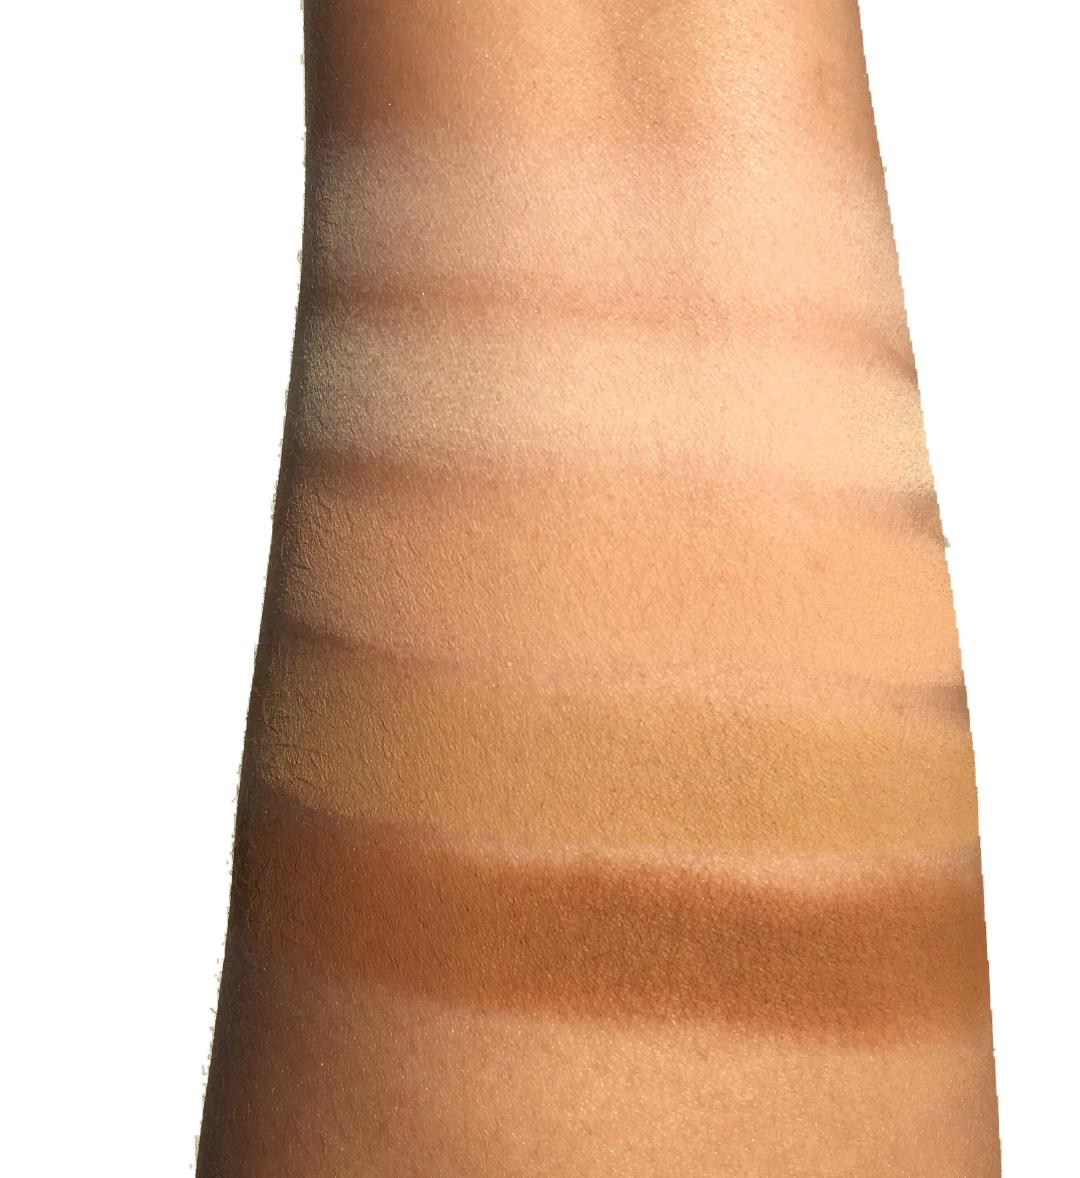 Visit Absinthe & Siren Theory Palette Swatches Kett Fixx Foundation swatches www.calibeaute.com